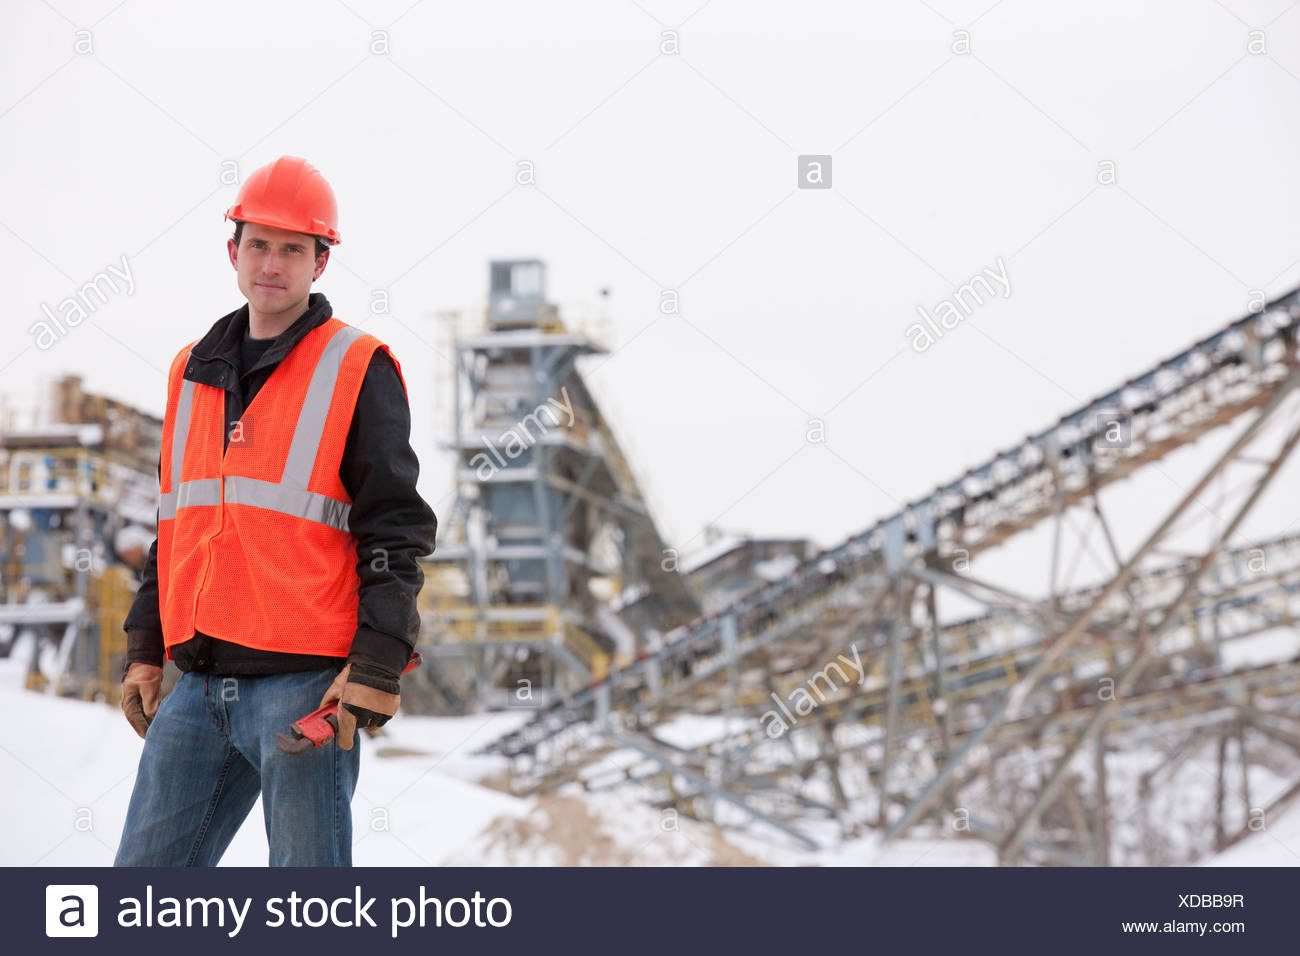 Engineer holding pipe wrench at a construction site - Stock Image